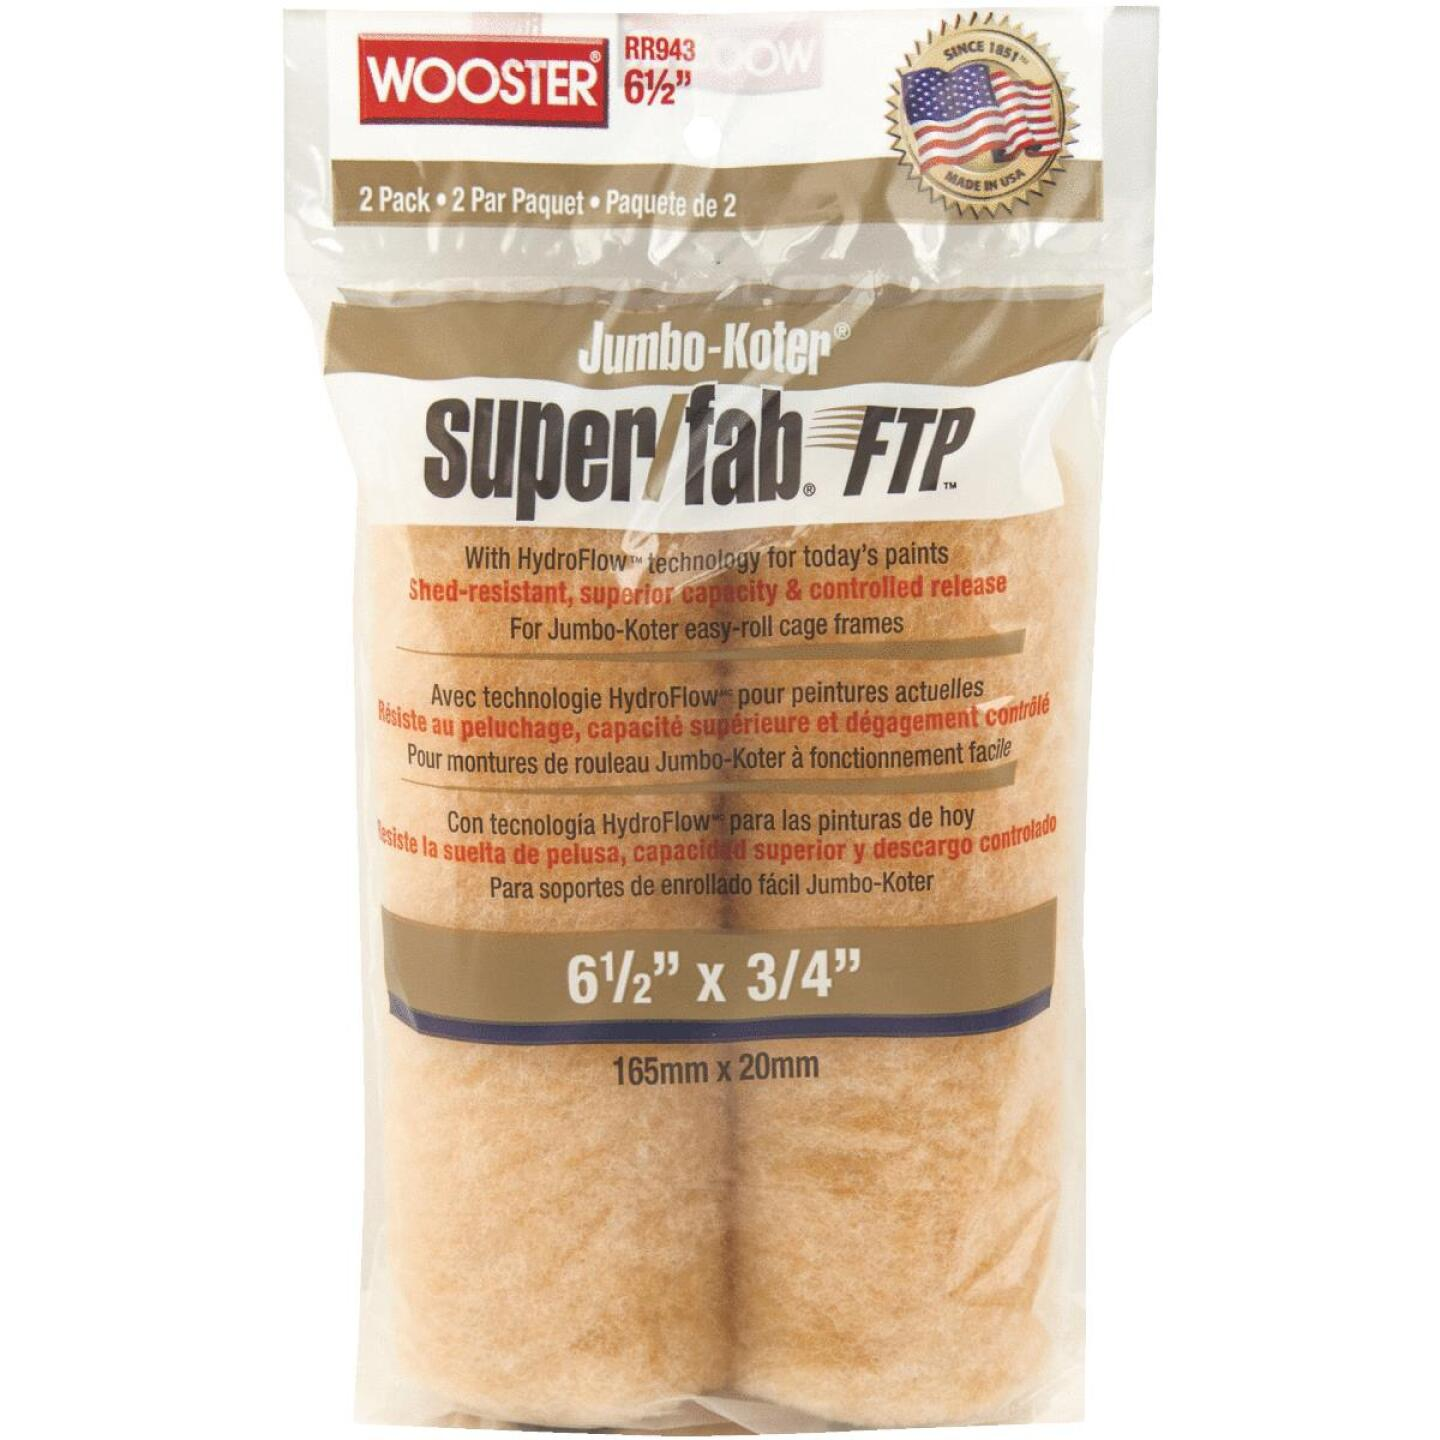 Wooster Jumbo-Koter Super/Fab FTP 6-1/2 In. x 3/4 In. Mini Knit Fabric Roller Cover (2-Pack) Image 1